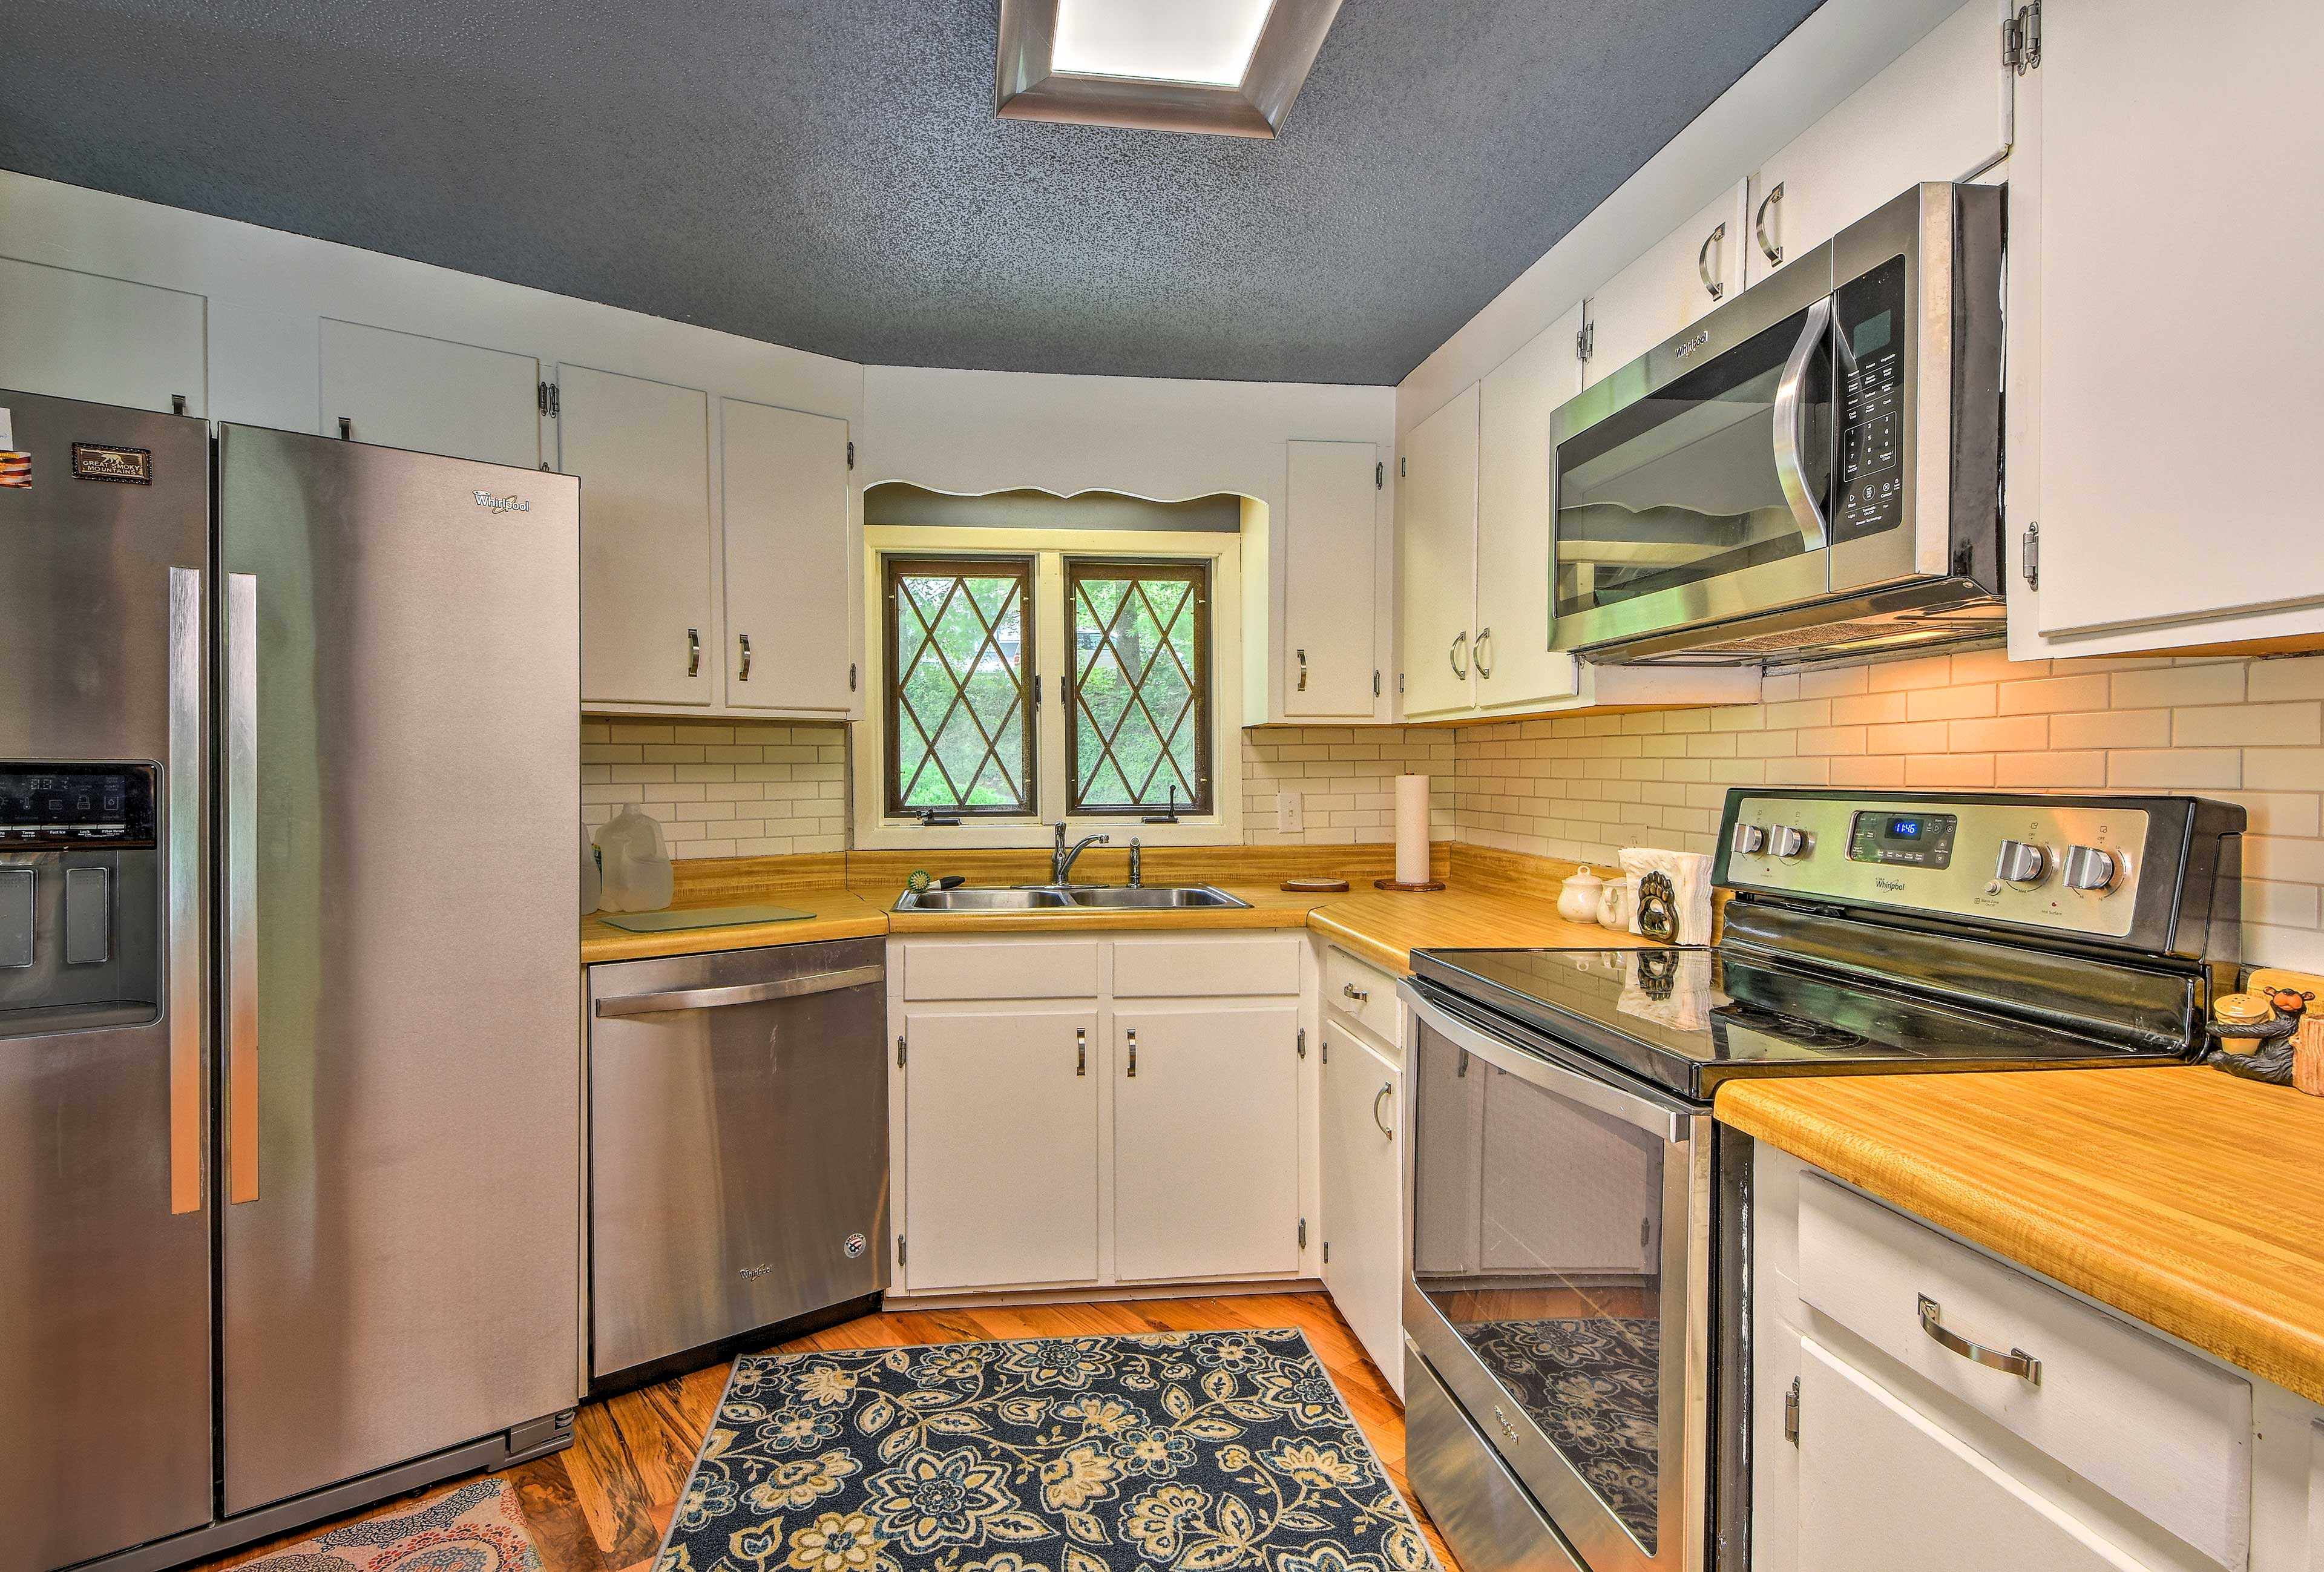 Whip up home-cooked dinners in the fully equipped kitchen.